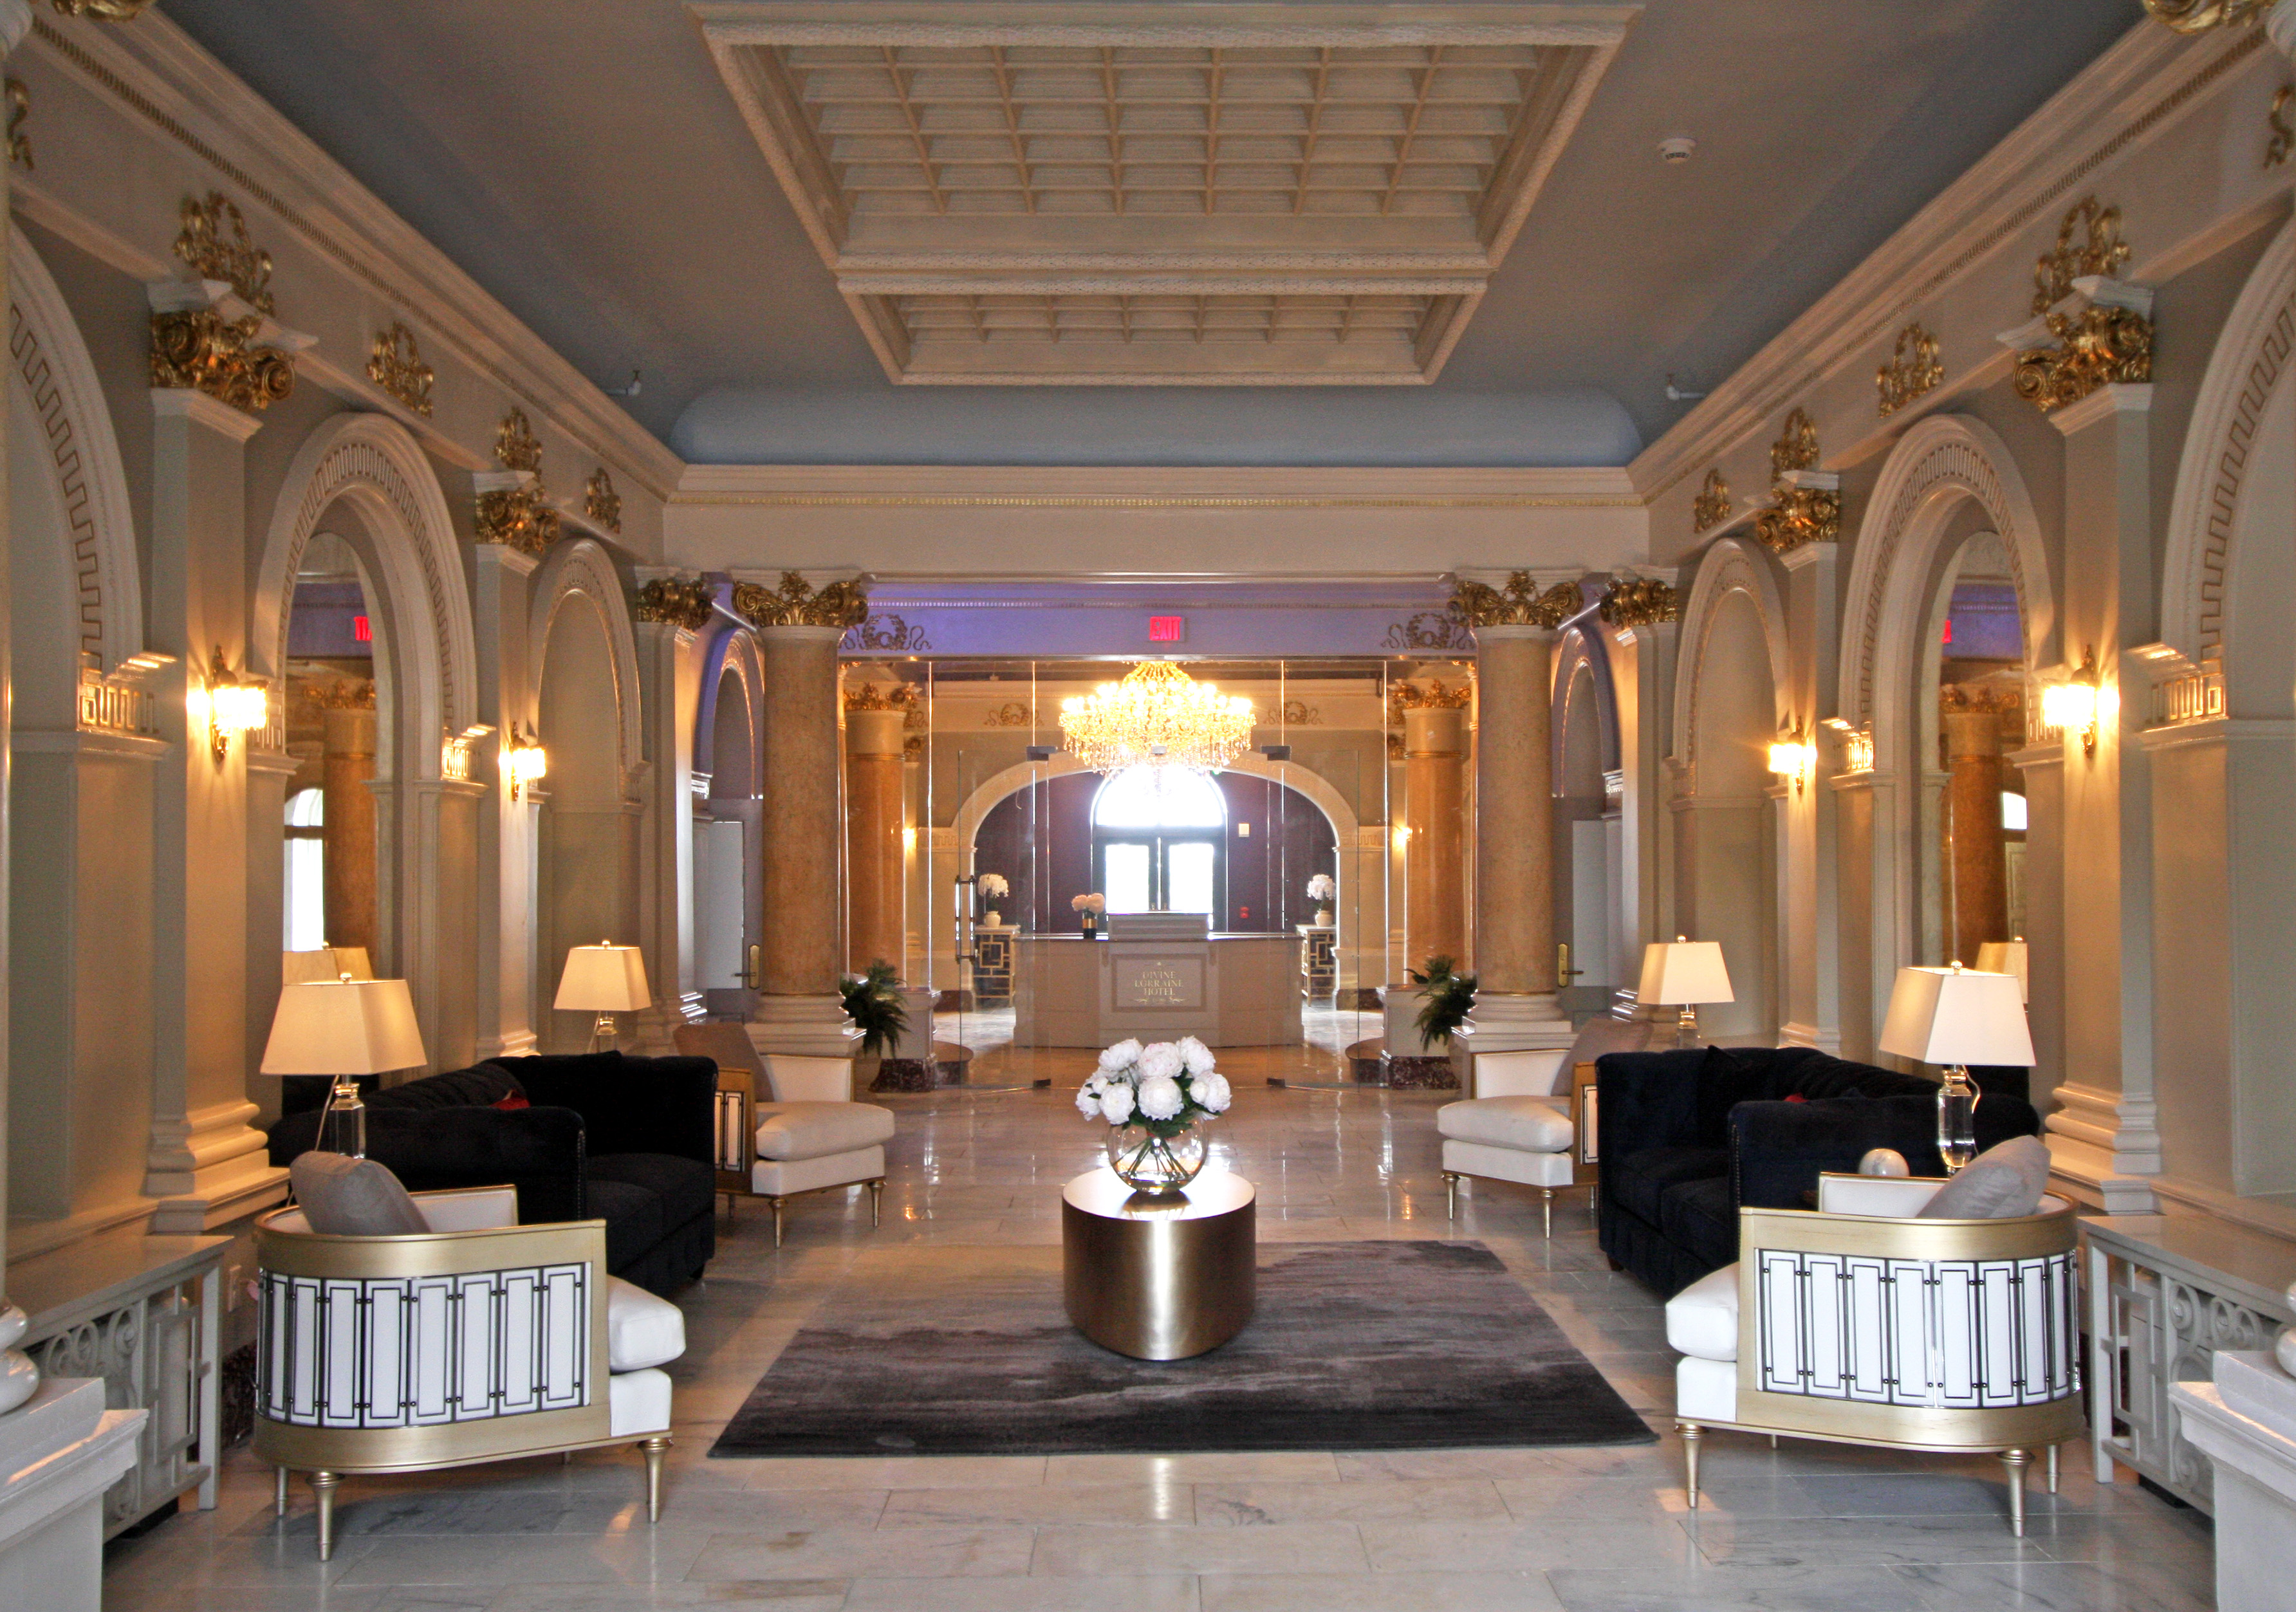 Exclusive: The Divine Lorraine lobby restored, in before-after ...